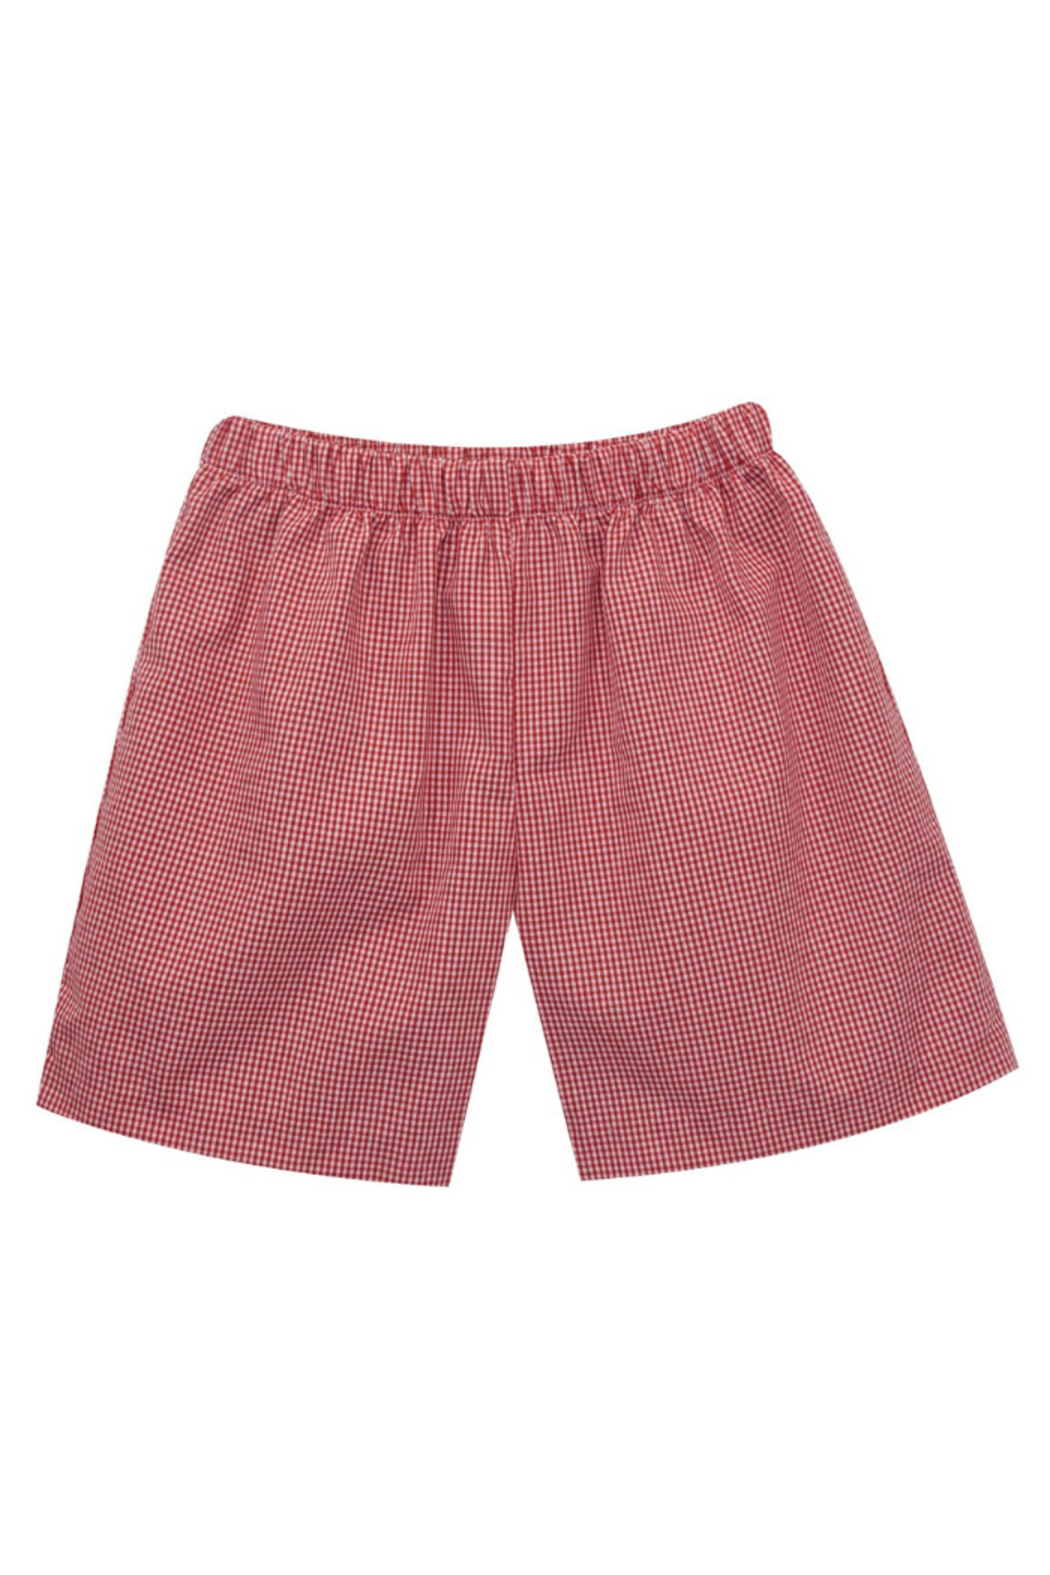 Vive La Fete  Mini Check Pull on Shorts - Front Cropped Image